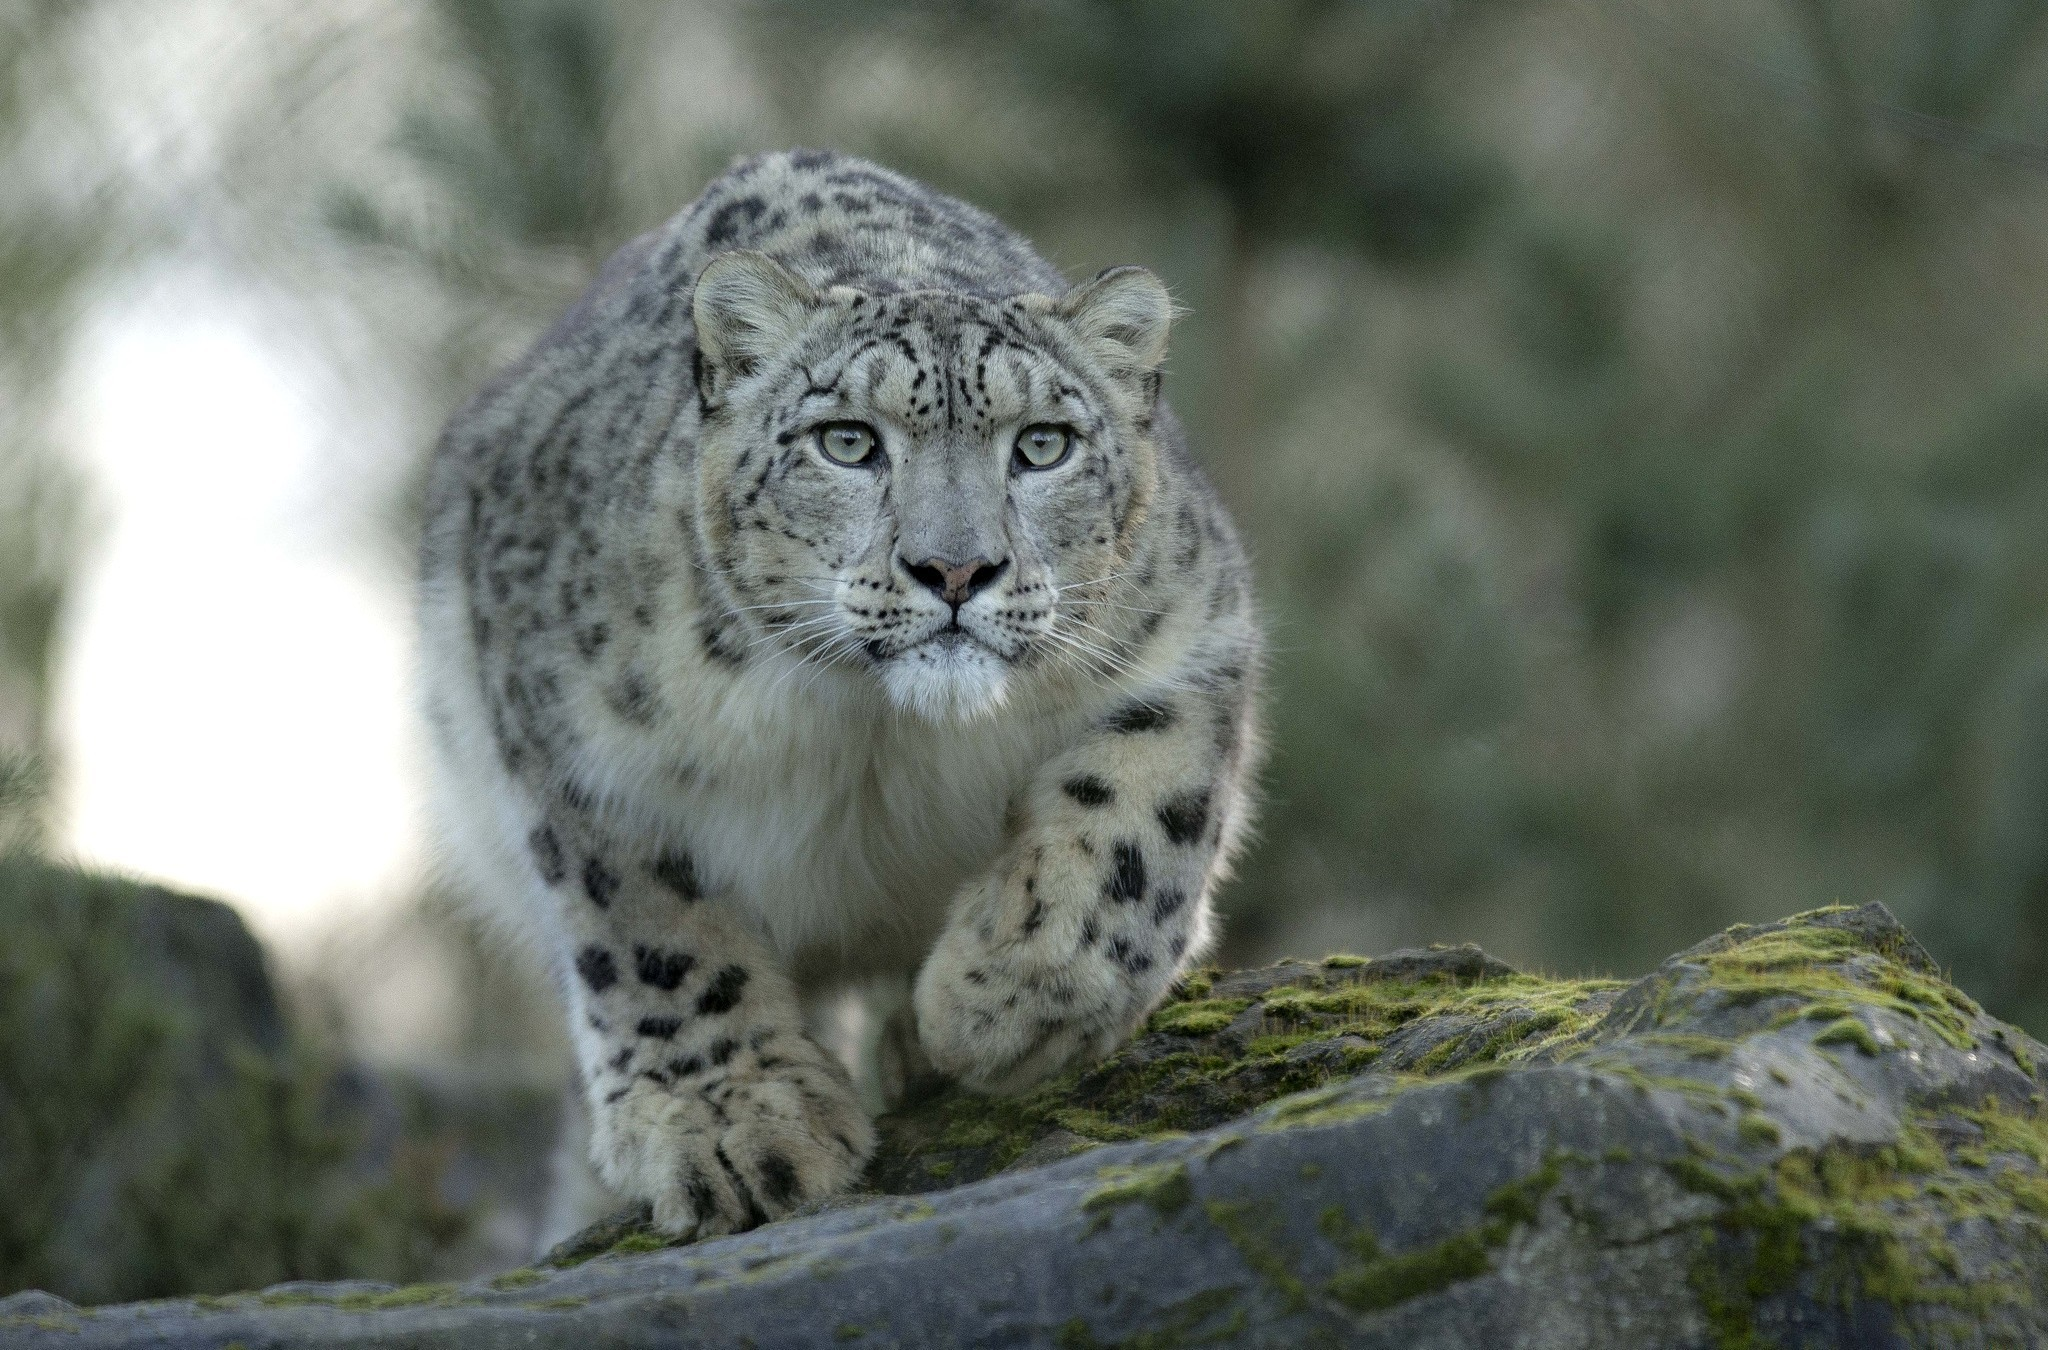 snow leopards in natural seclection .